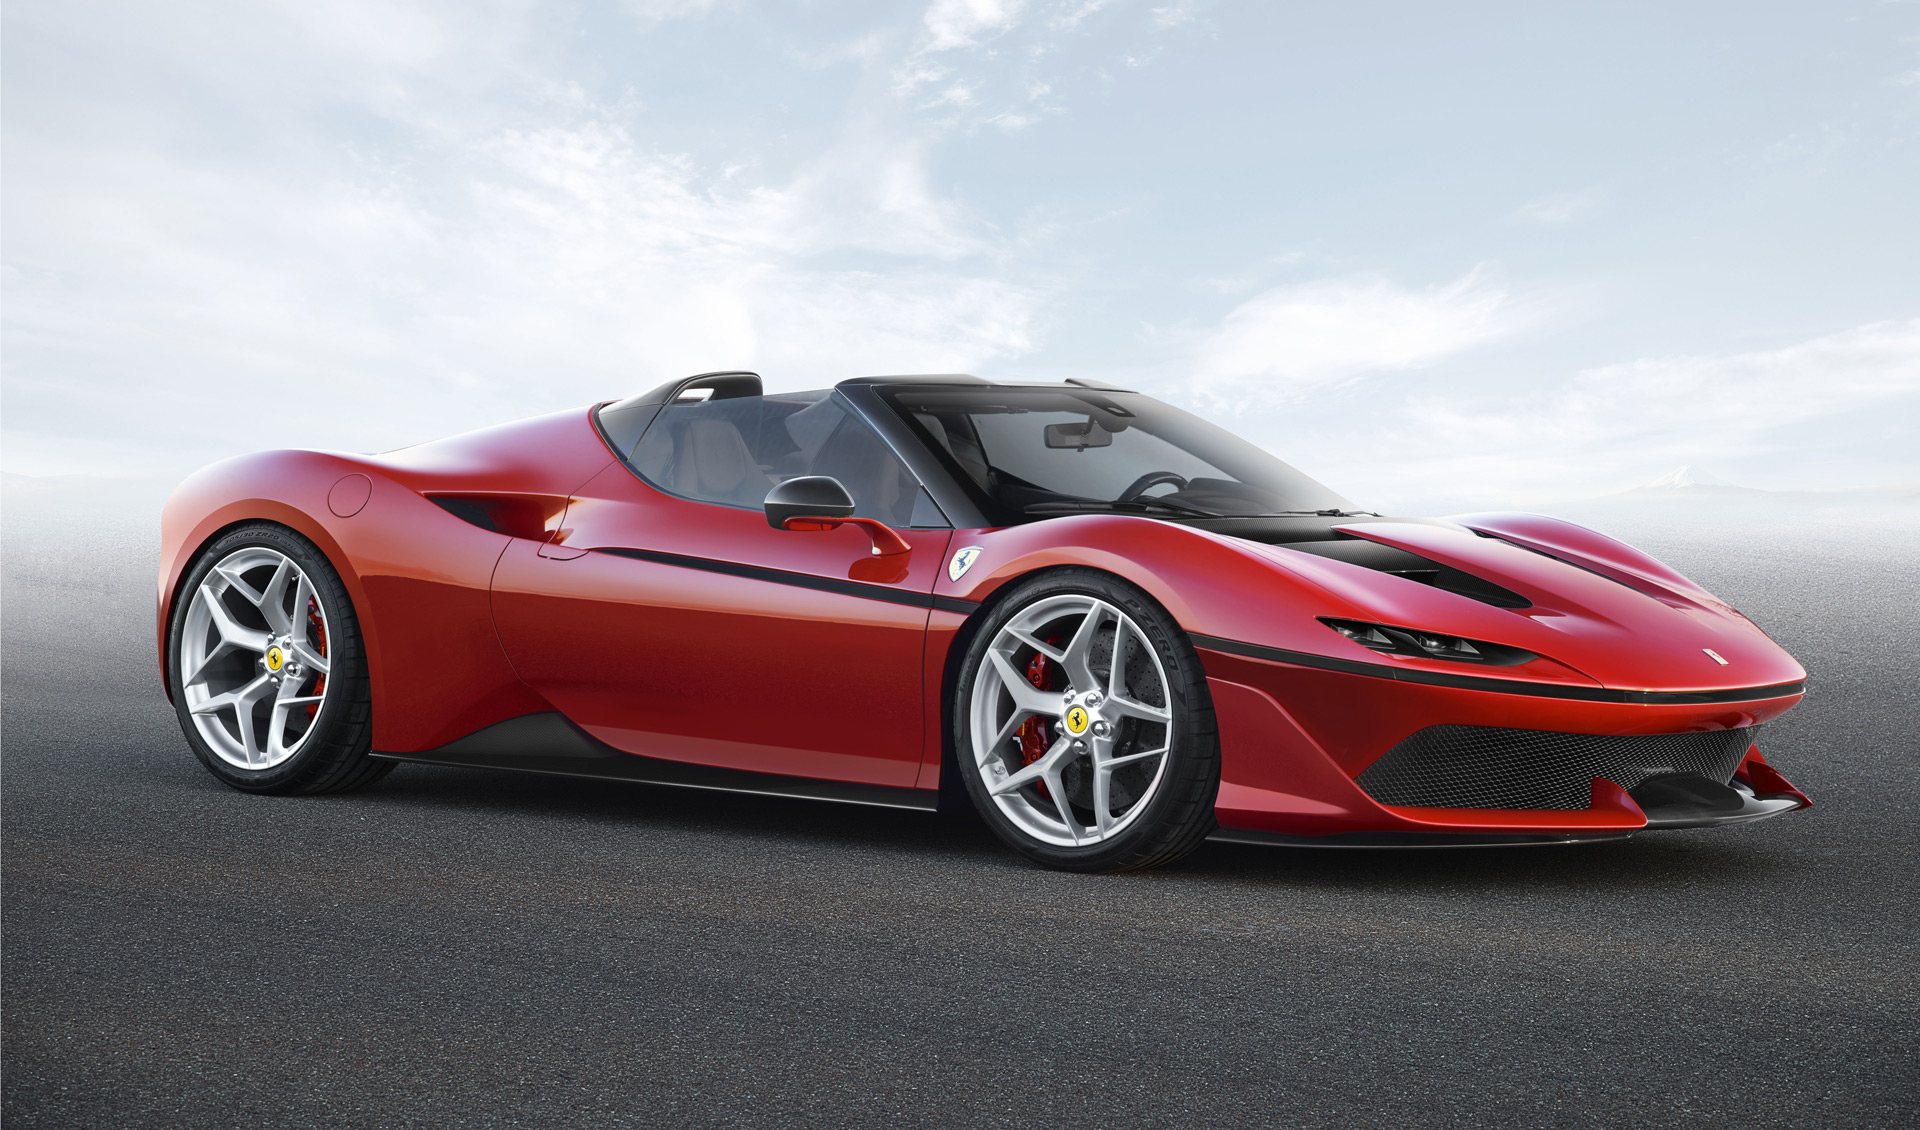 One Of Ten Ferrari J50 Special Edition Cars Surfaces For Sale